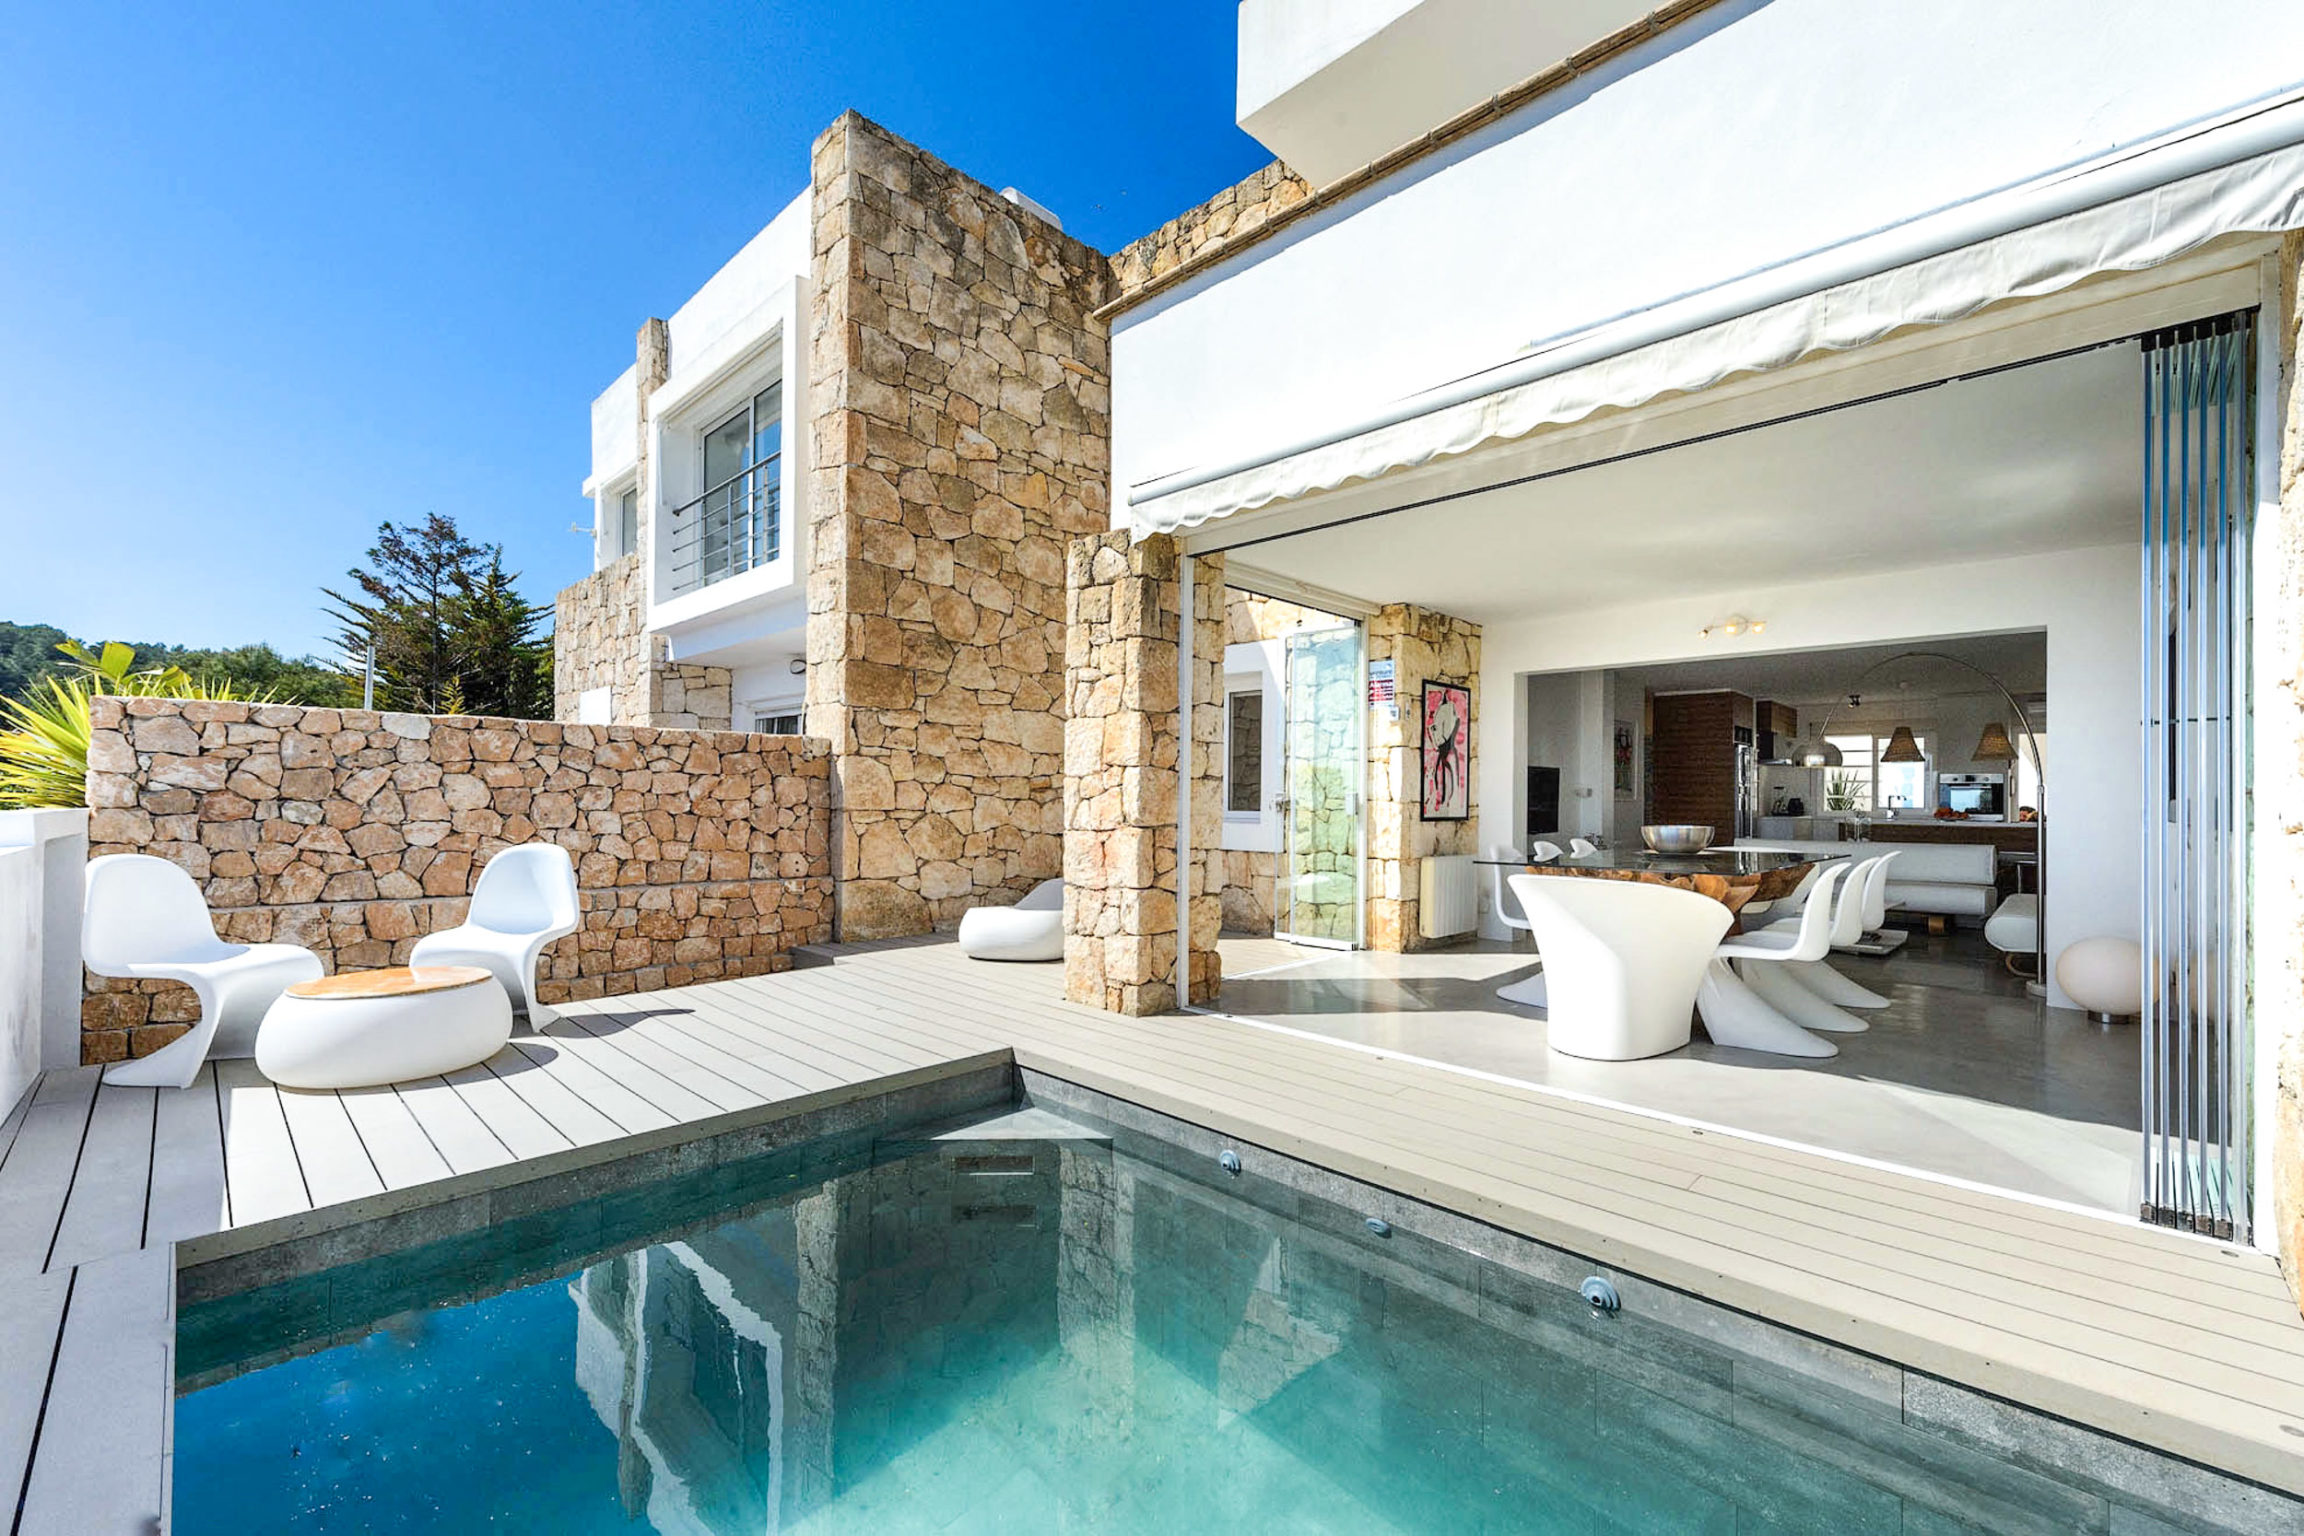 https://www.white-ibiza.com/wp-content/uploads/2020/03/white-ibiza-property-WI181-2020-05-2304x1536.jpg